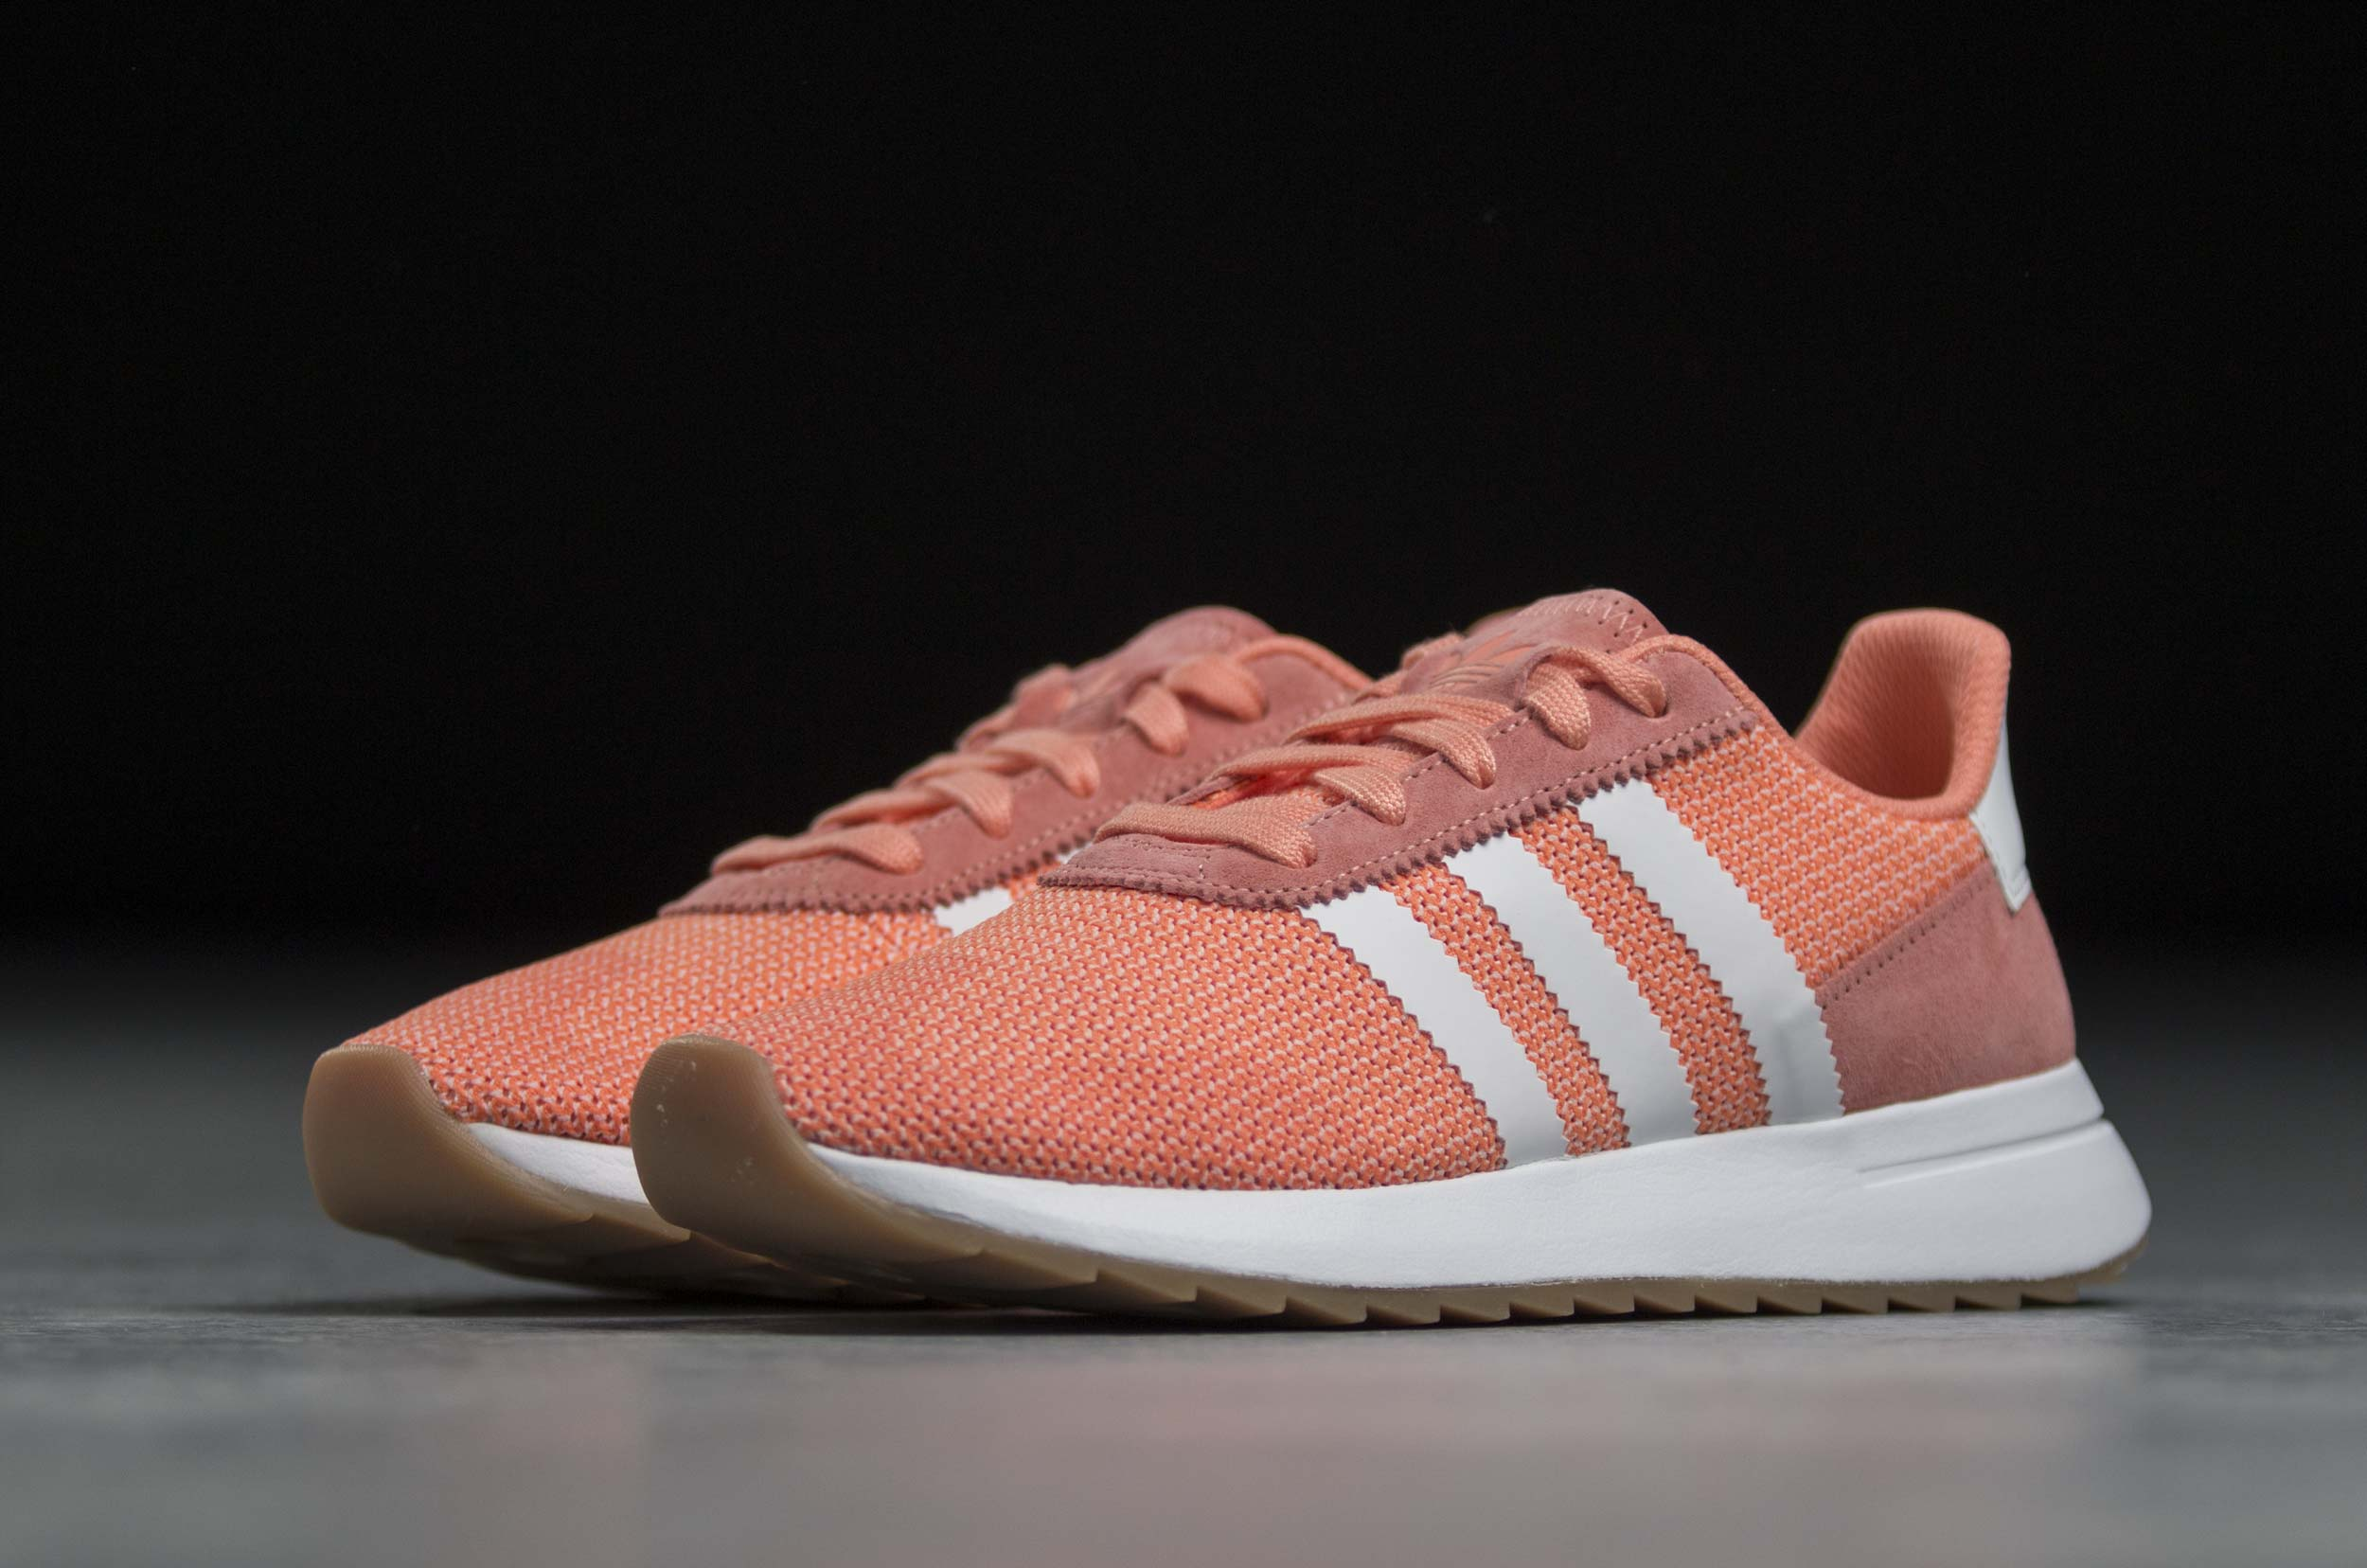 adidas Originals FLB RUNNER W DB2121 Κοραλί